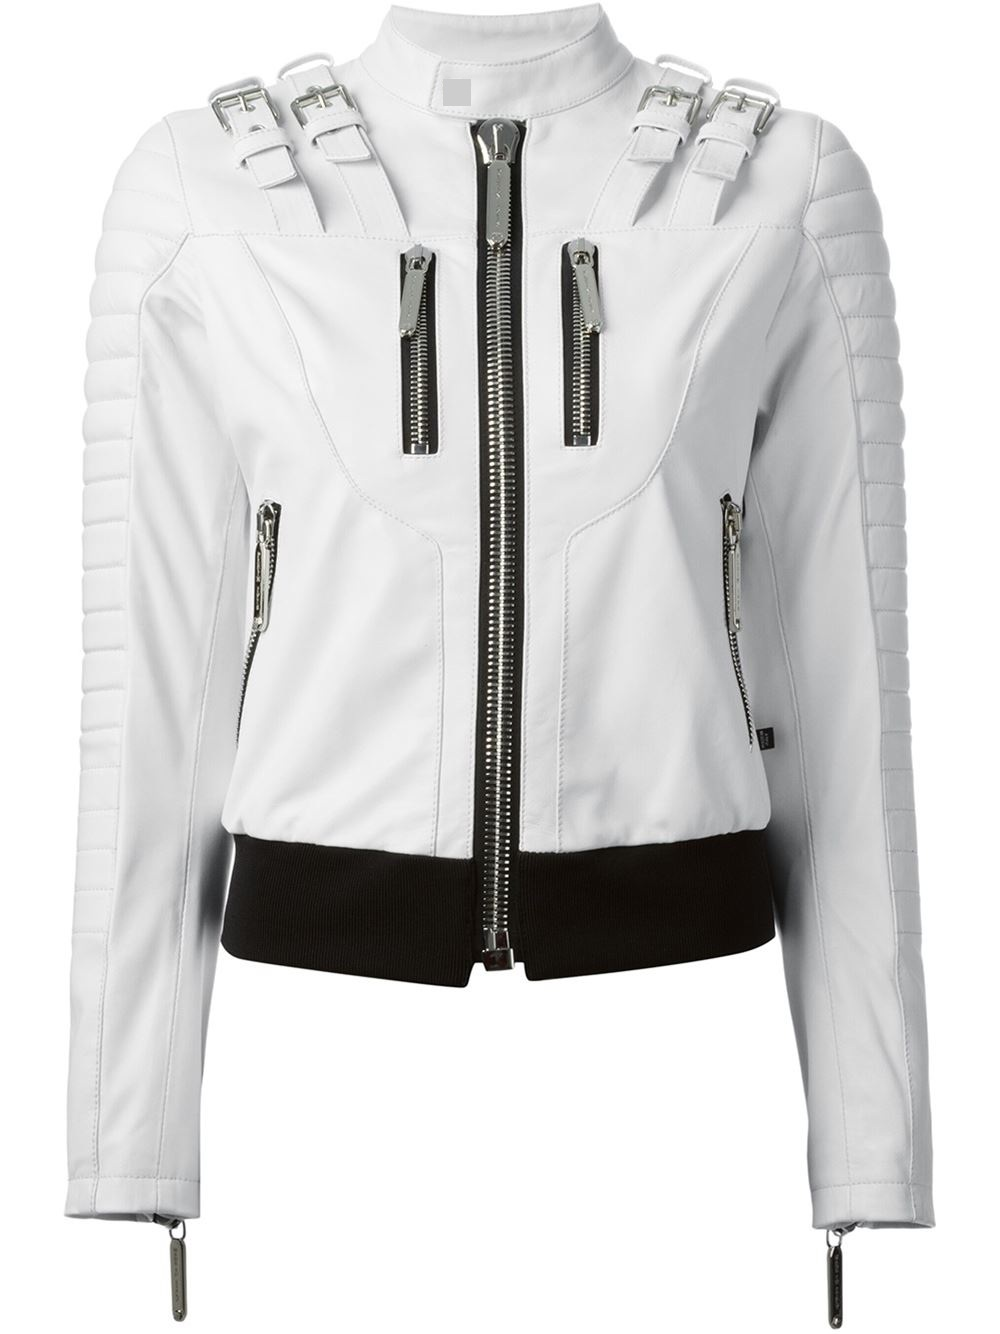 White Leather Zipper Leather Jackets For Women - Leather Jackets USA